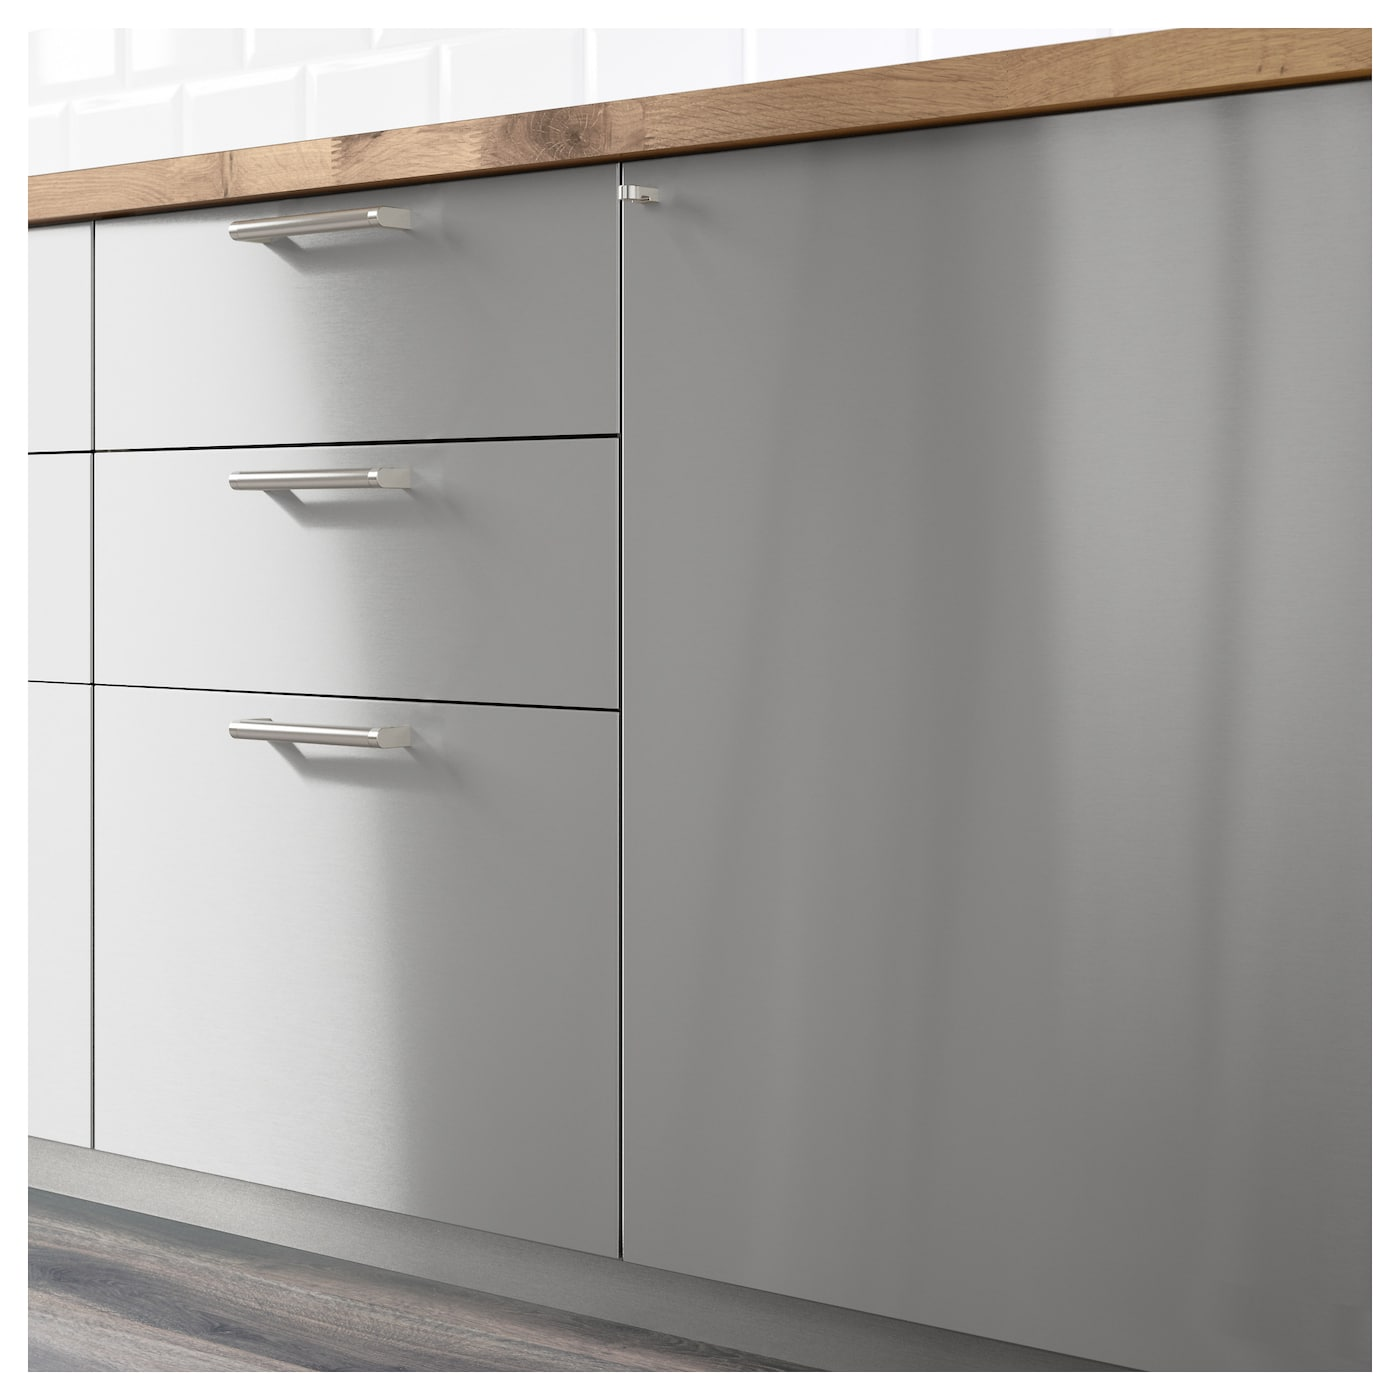 stainless kitchen cabinet doors grevsta door stainless steel 60 x 80 cm ikea 26602